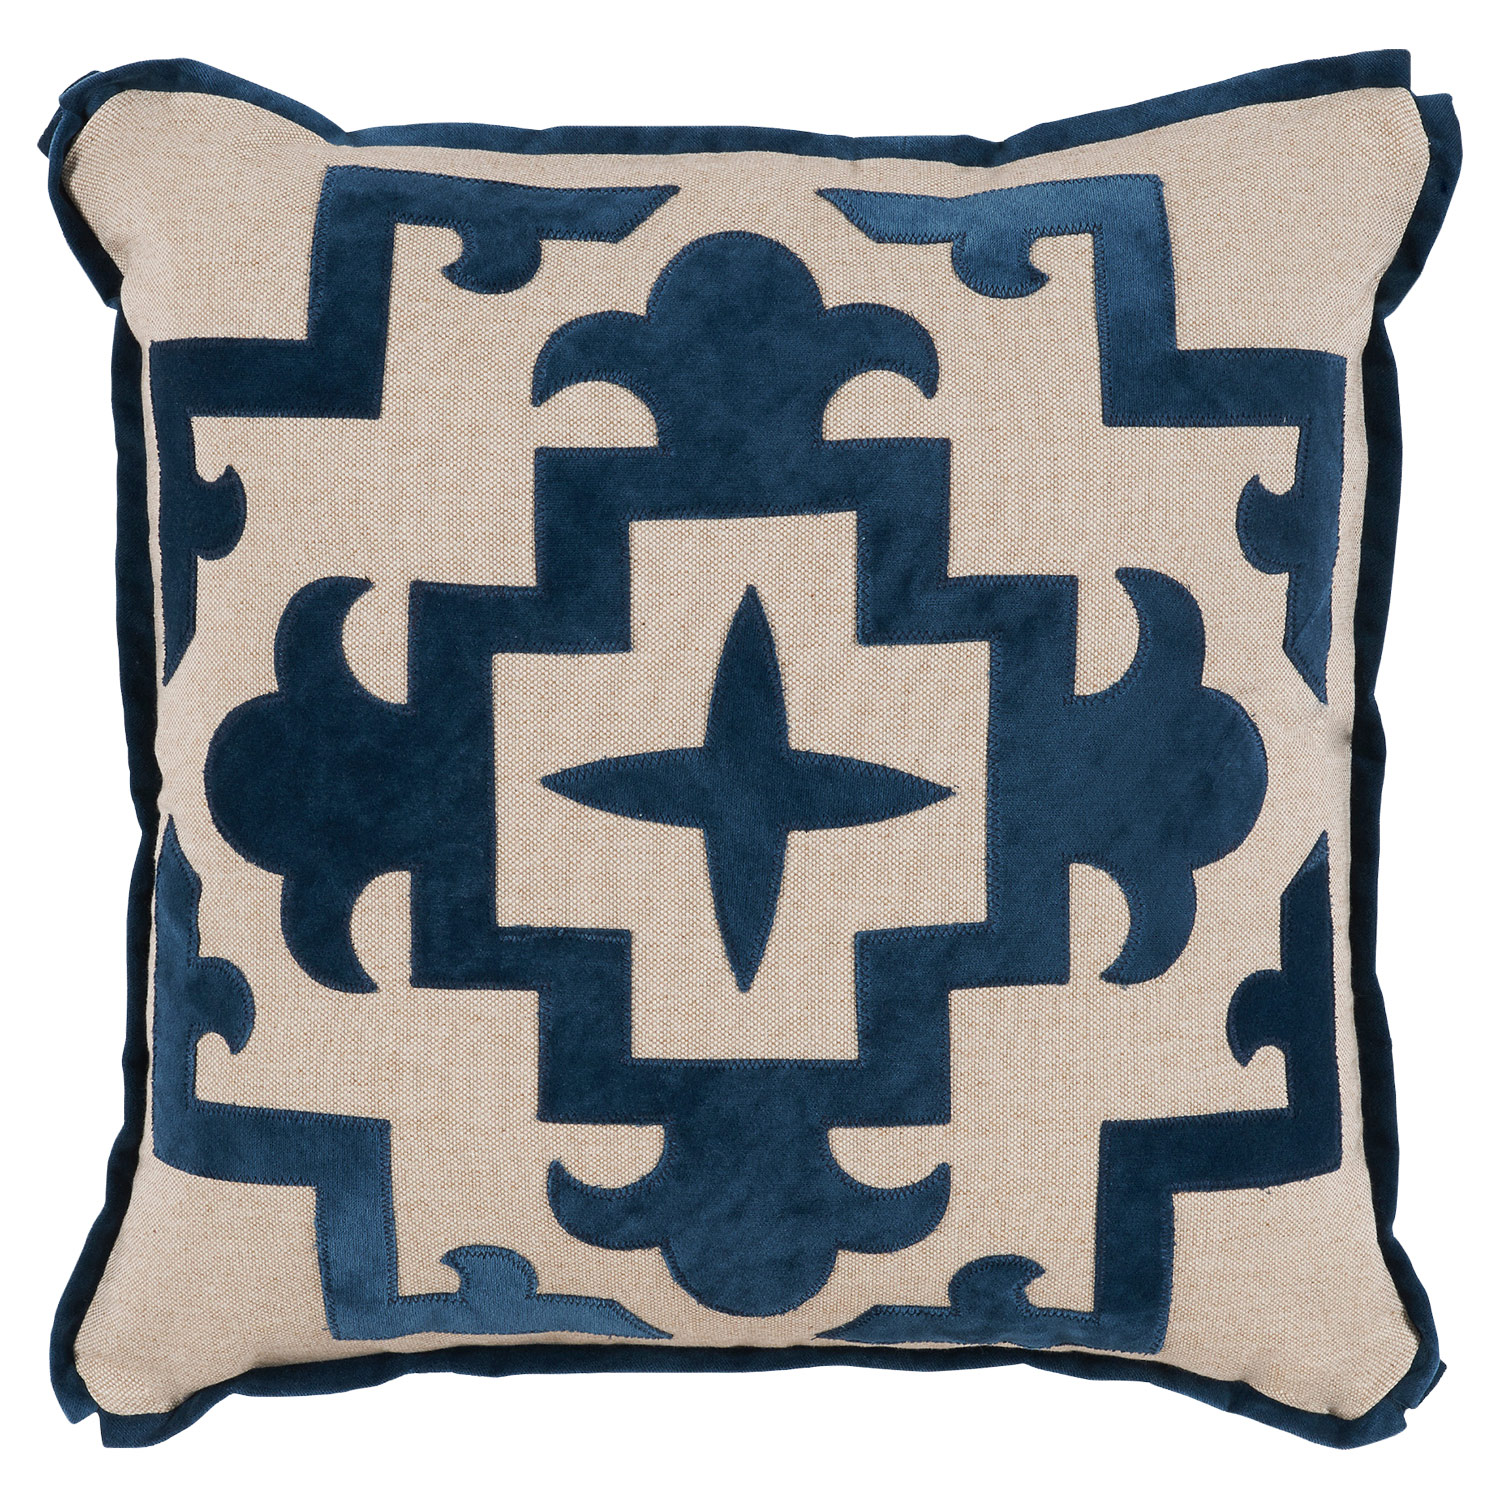 Libby Blue Velvet Finial Beige Pillow - 22x22